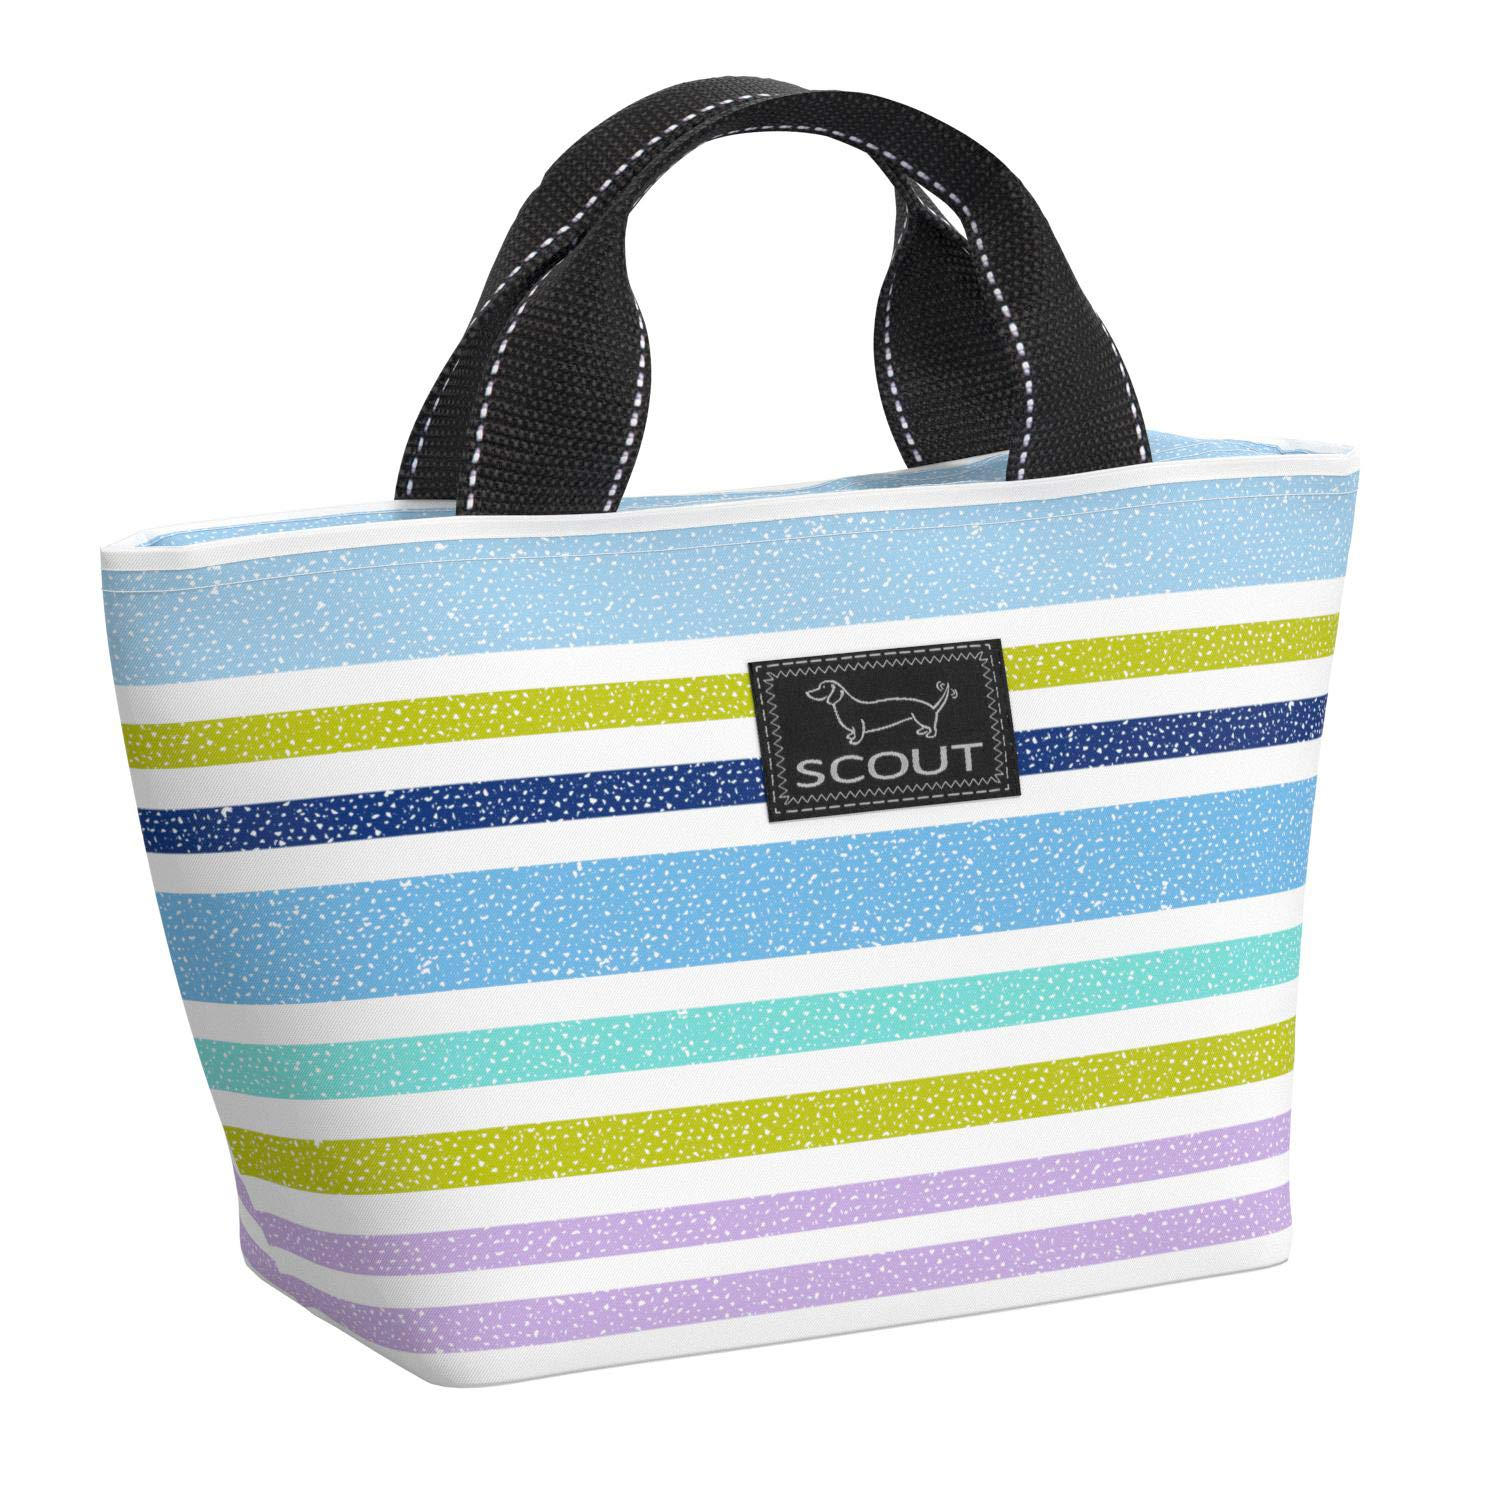 9a2bc74484b Amazon.com: SCOUT NOONER Insulated Lunch Bag for Women, Water-Resistant  Soft Cooler Lunch Tote with Zipper Closure (Multiple Patterns Available):  Kitchen & ...